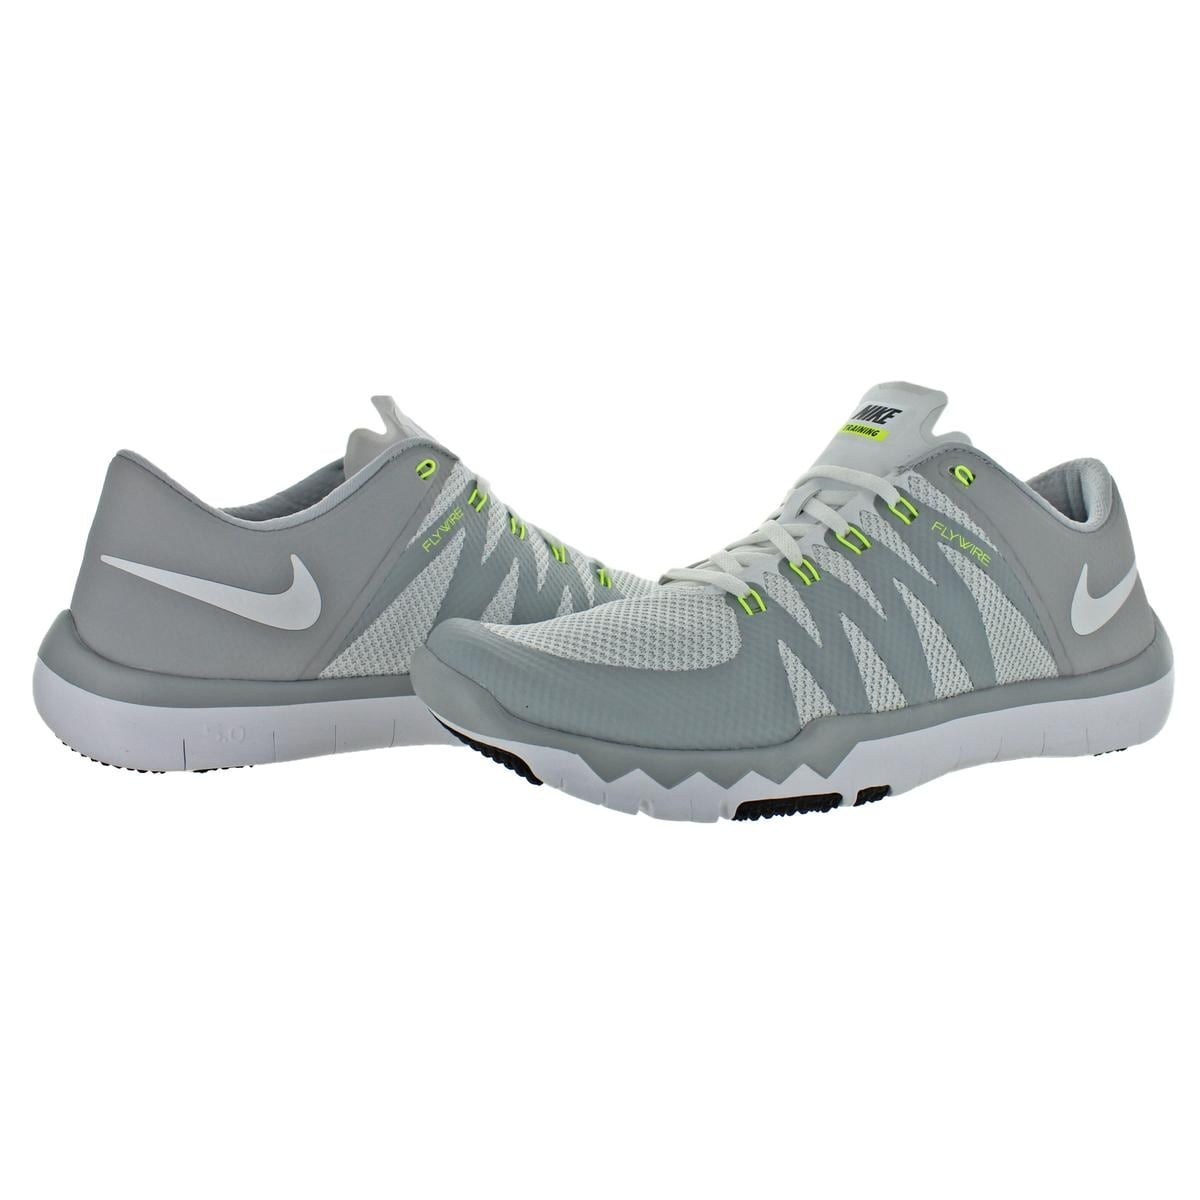 new product afb8a e5abe Shop Nike Mens Free Trainer 5.0 V6 Running, Cross Training Shoes Flywire  Mesh - Free Shipping Today - Overstock - 21942427